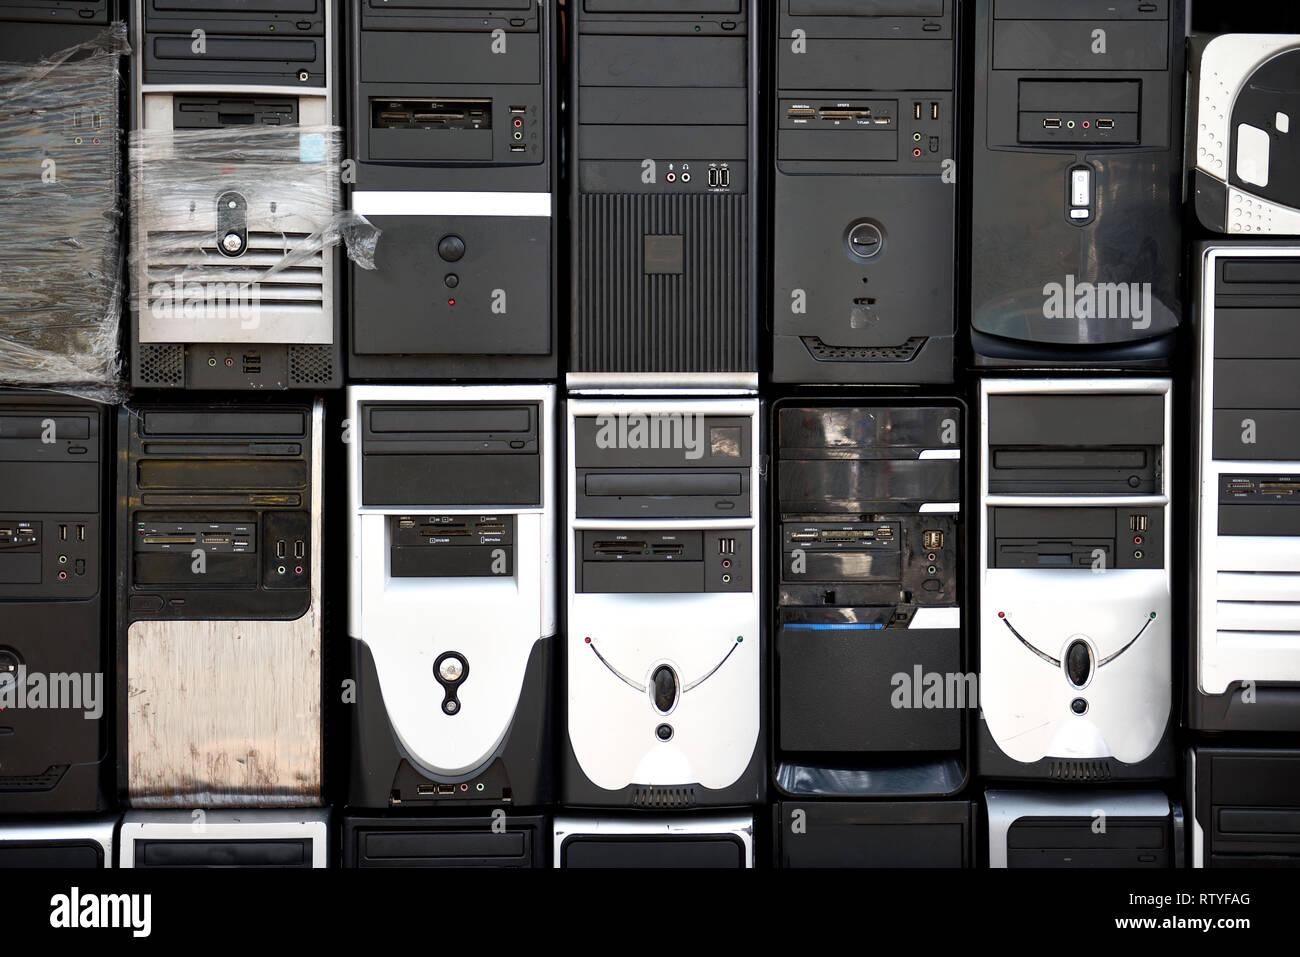 Rows of stacked, used, outdated desktop computer tower equipment, obsolete technology. - Stock Image